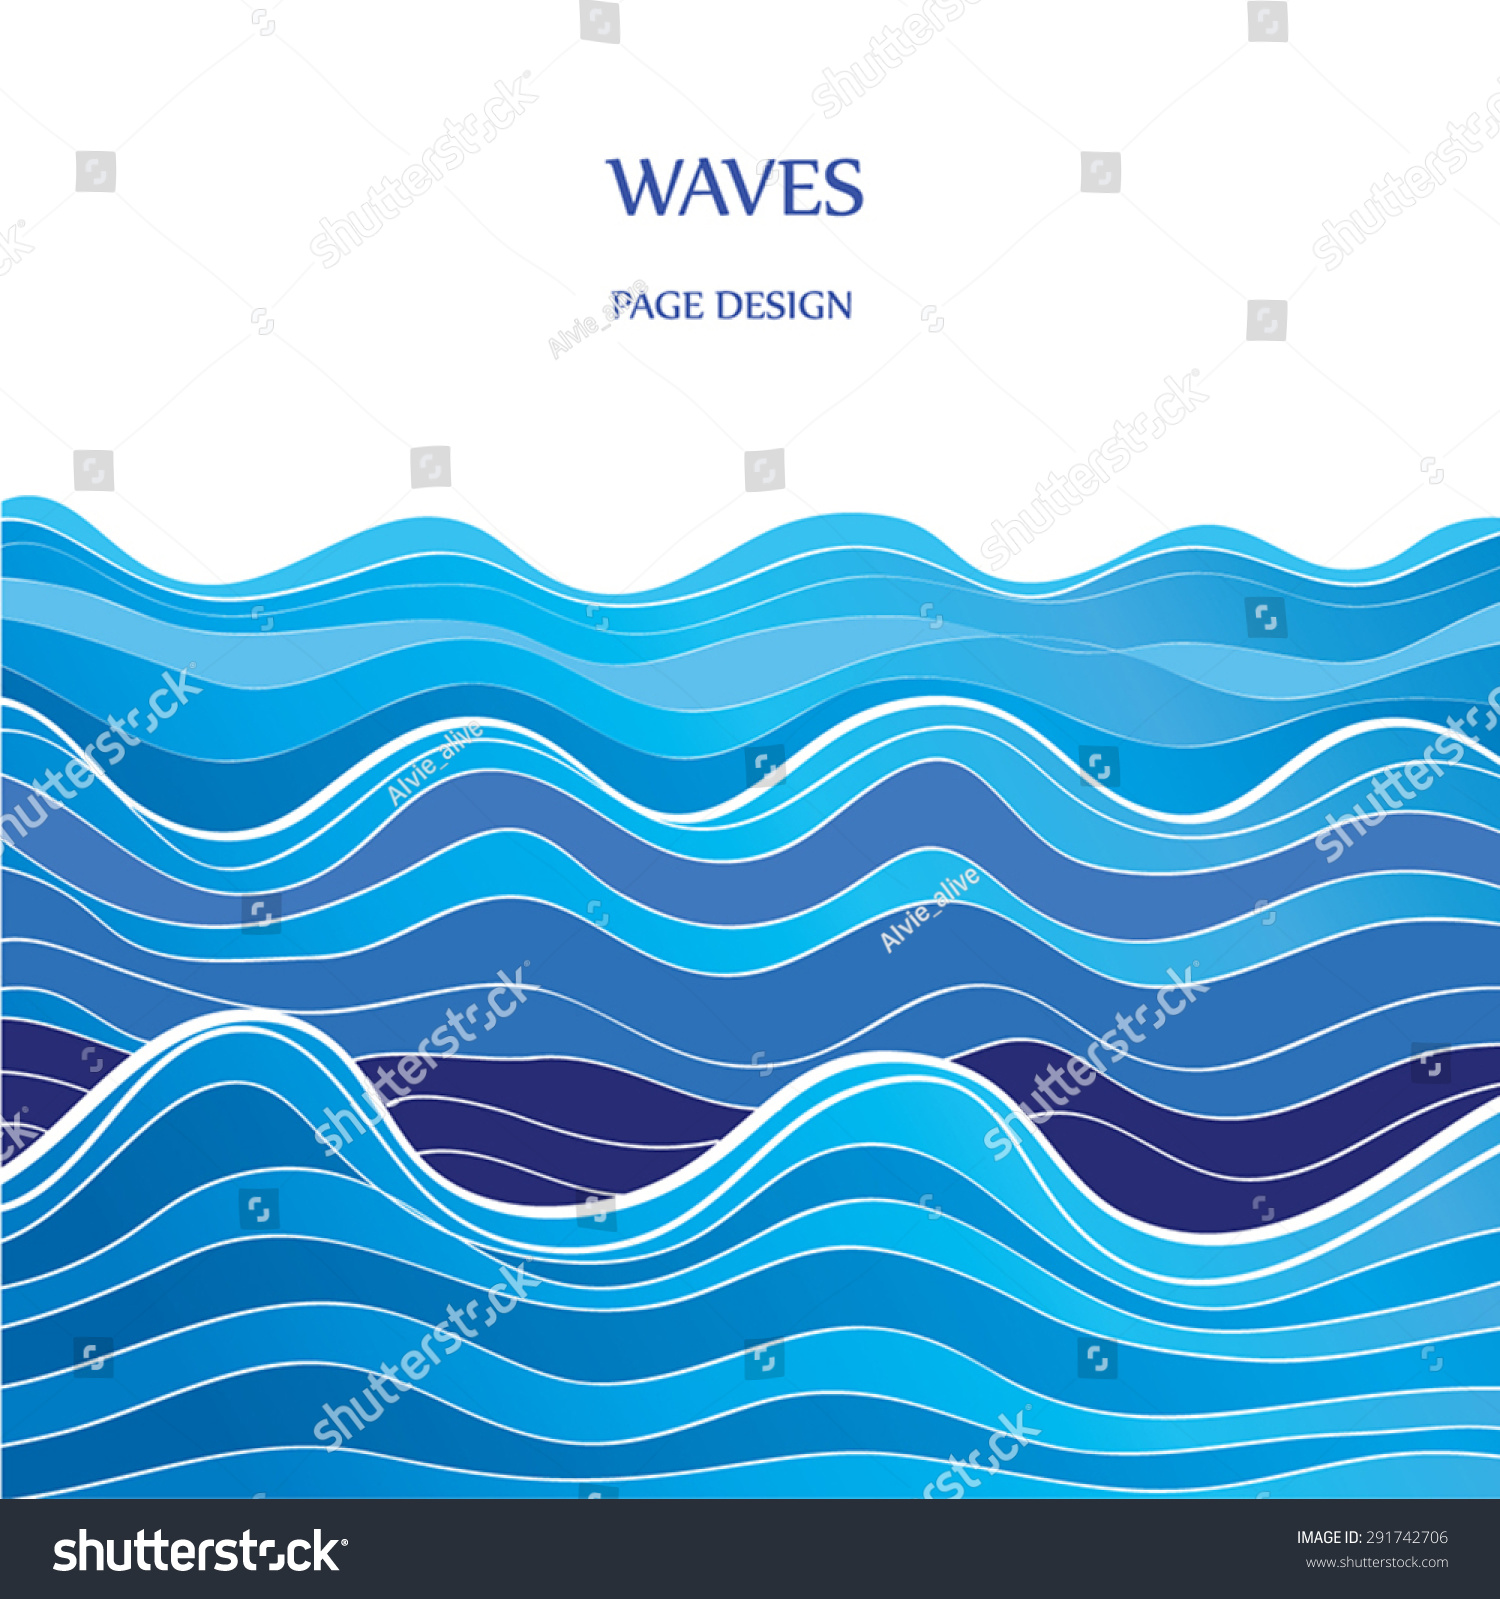 Blue Graphic Waves Vector Illustration Blue Stock Vector 291742706 ...